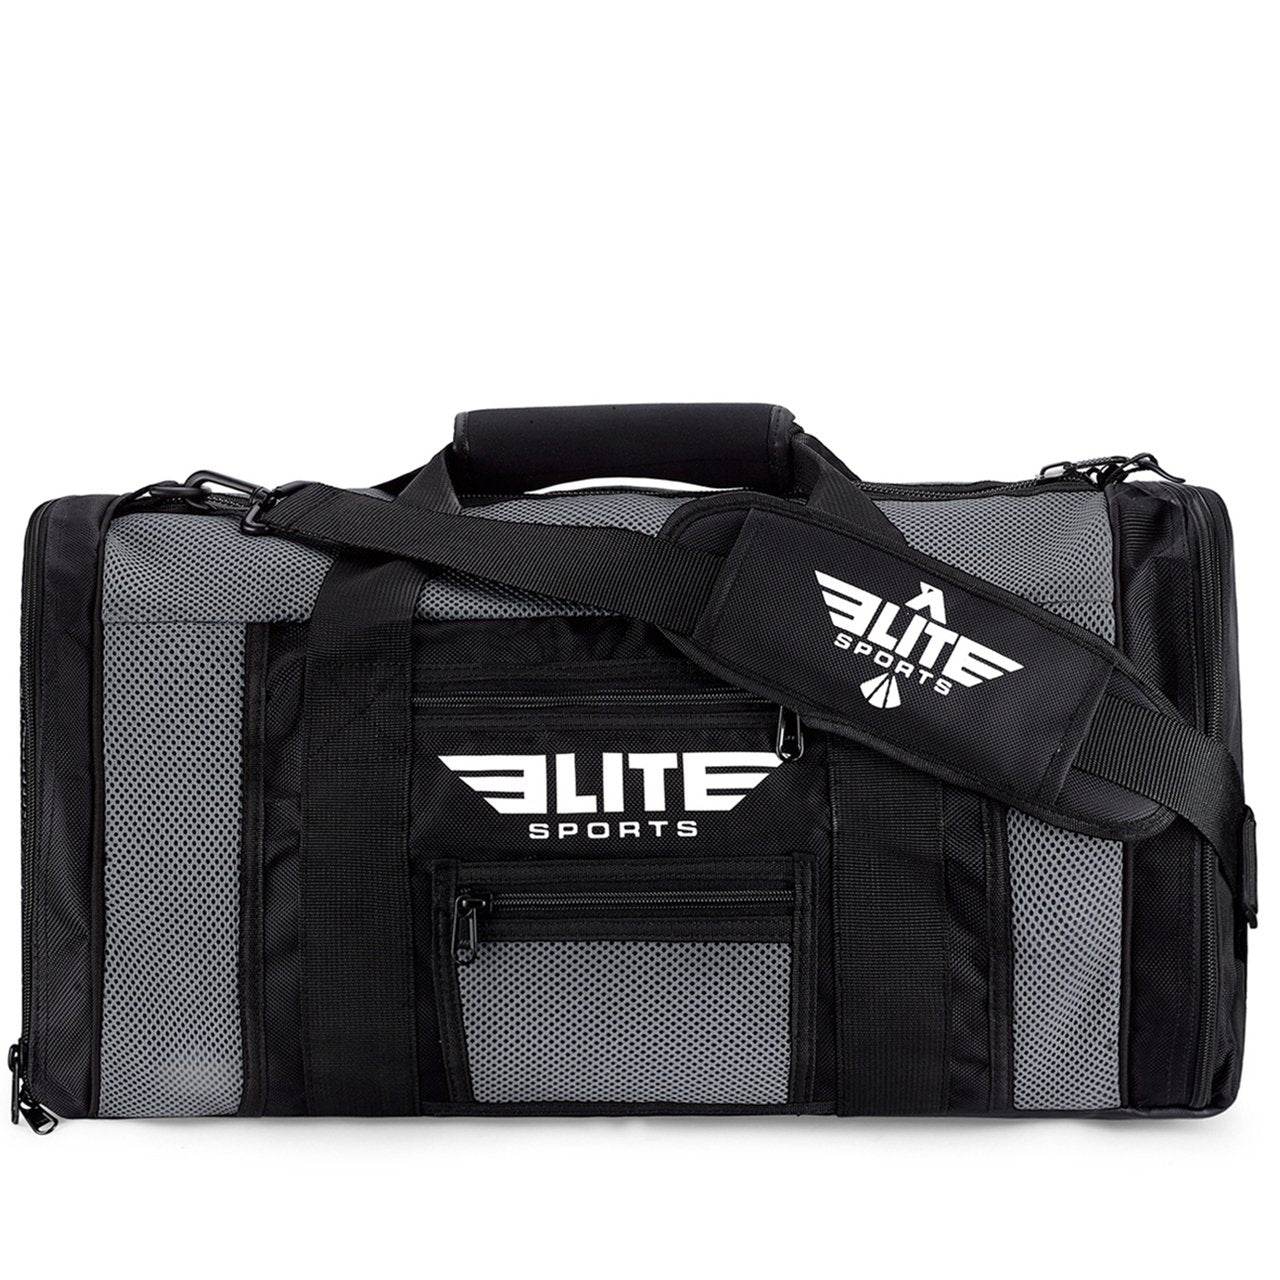 Elite Sports Mesh Gray Large Wrestling Gear Gym Bag